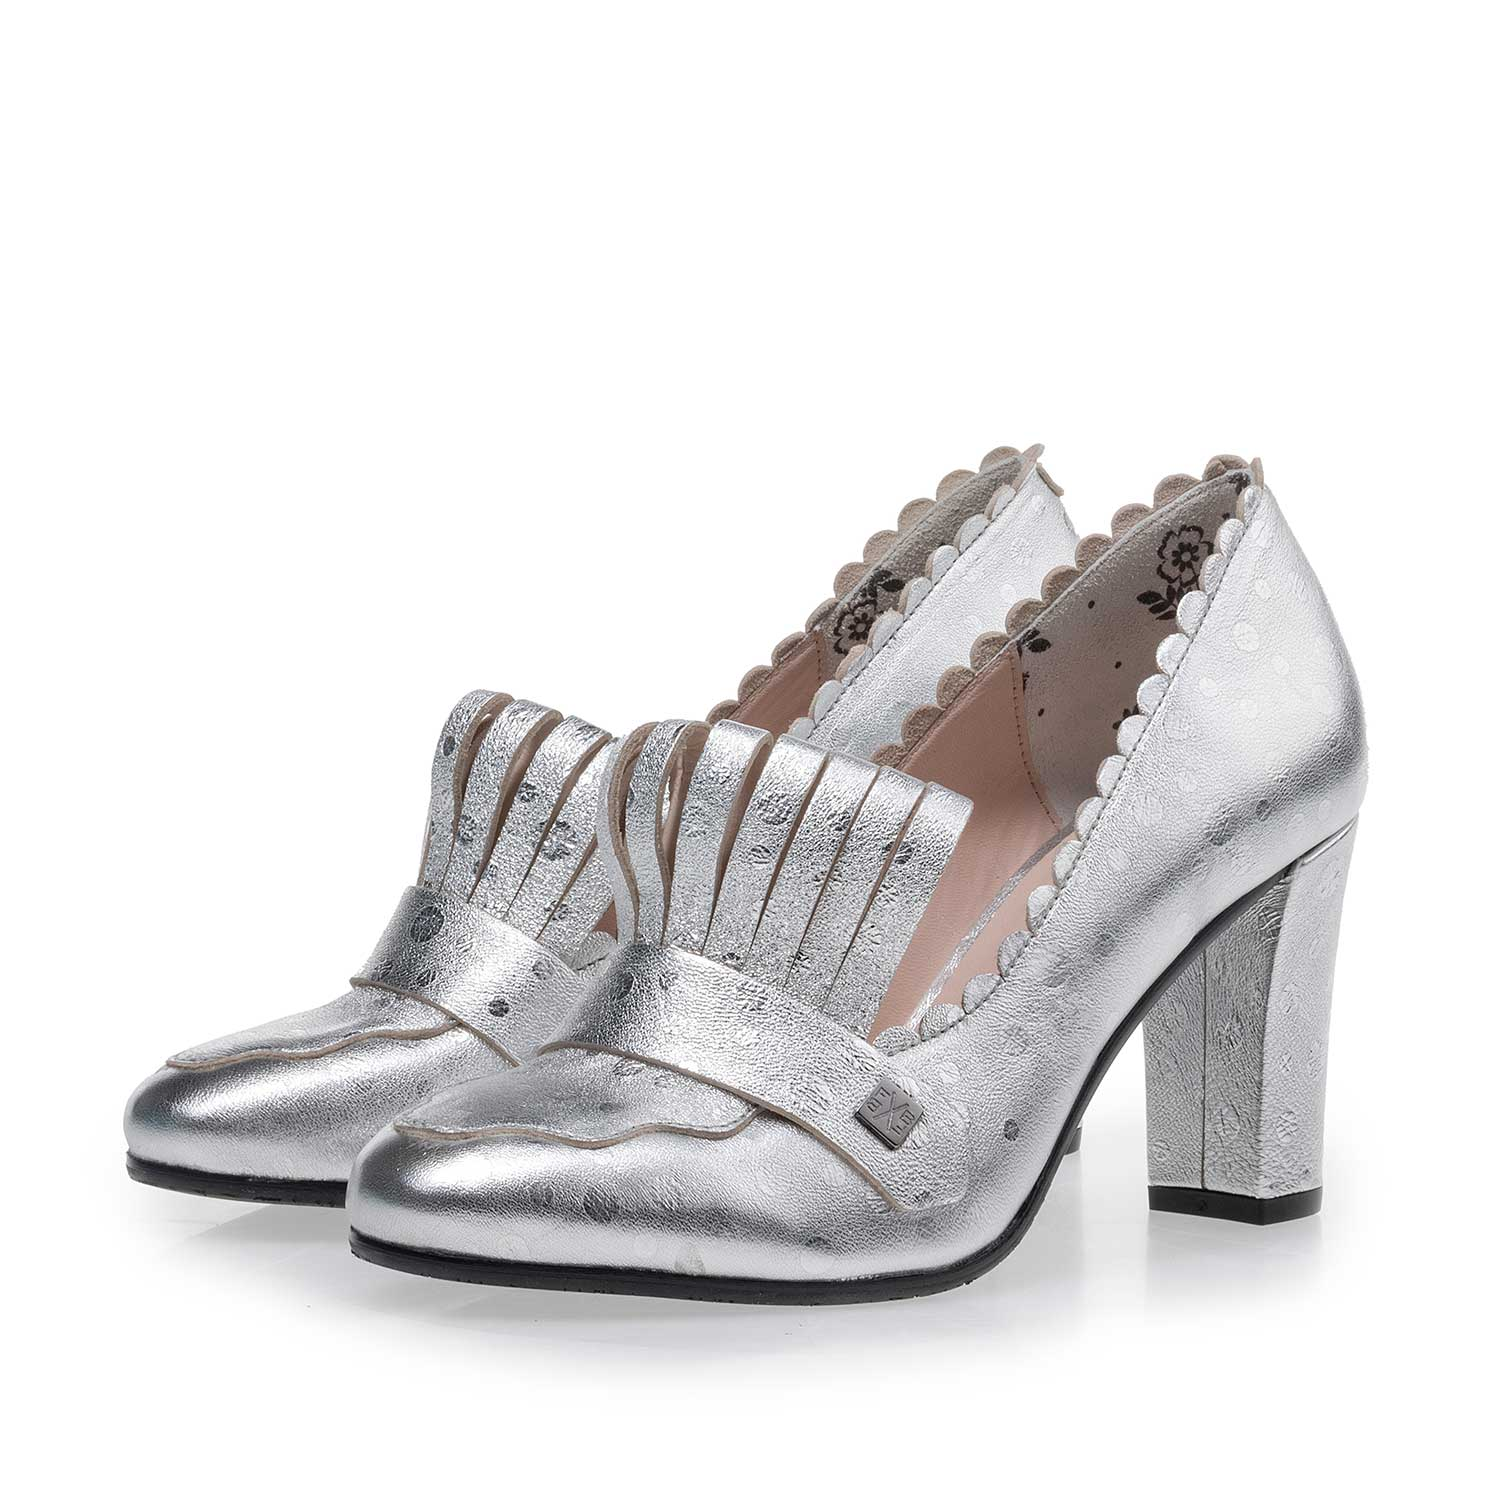 85190/04 - Silver-coloured leather pumps with dotted design